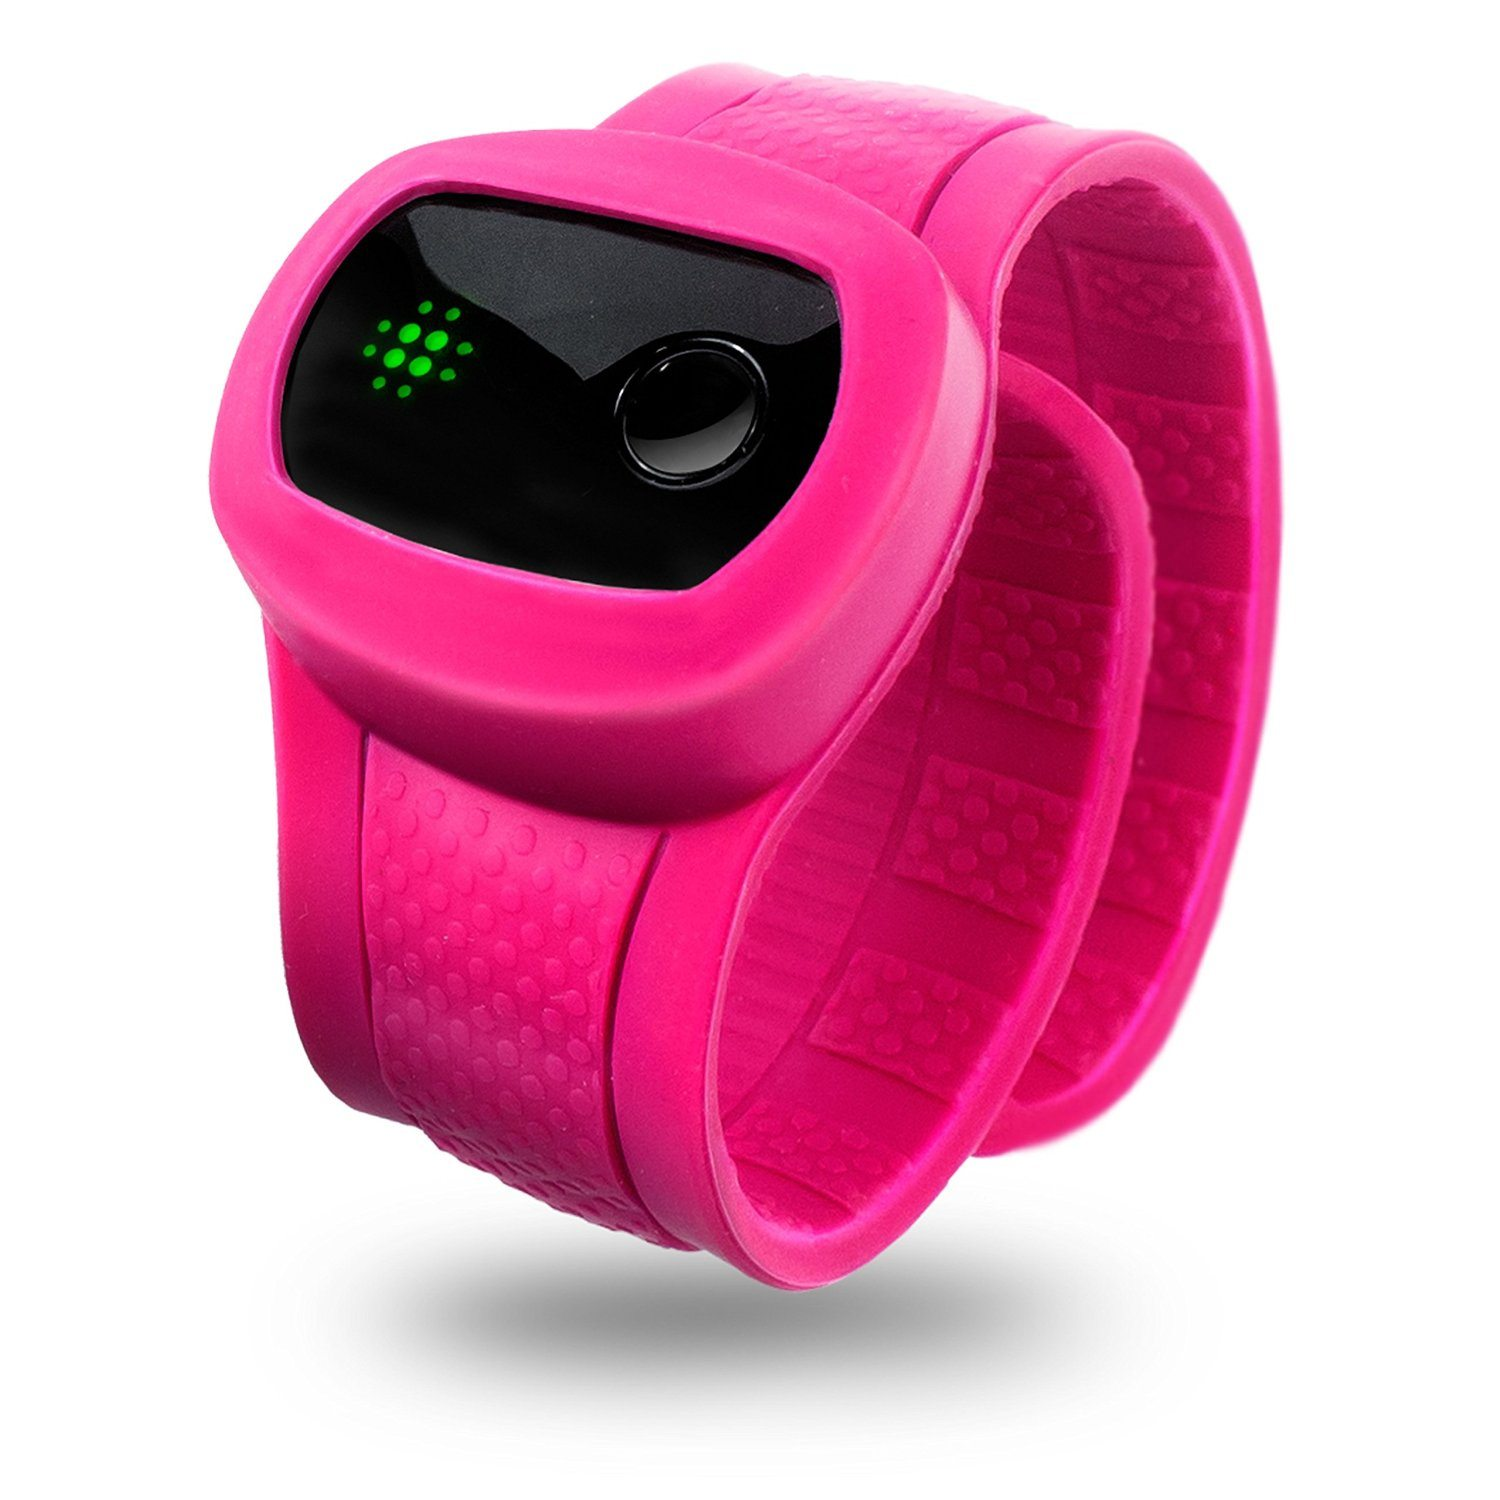 fitnesstrackerspic videos trackers fitness video budget tracker for watches every cnet